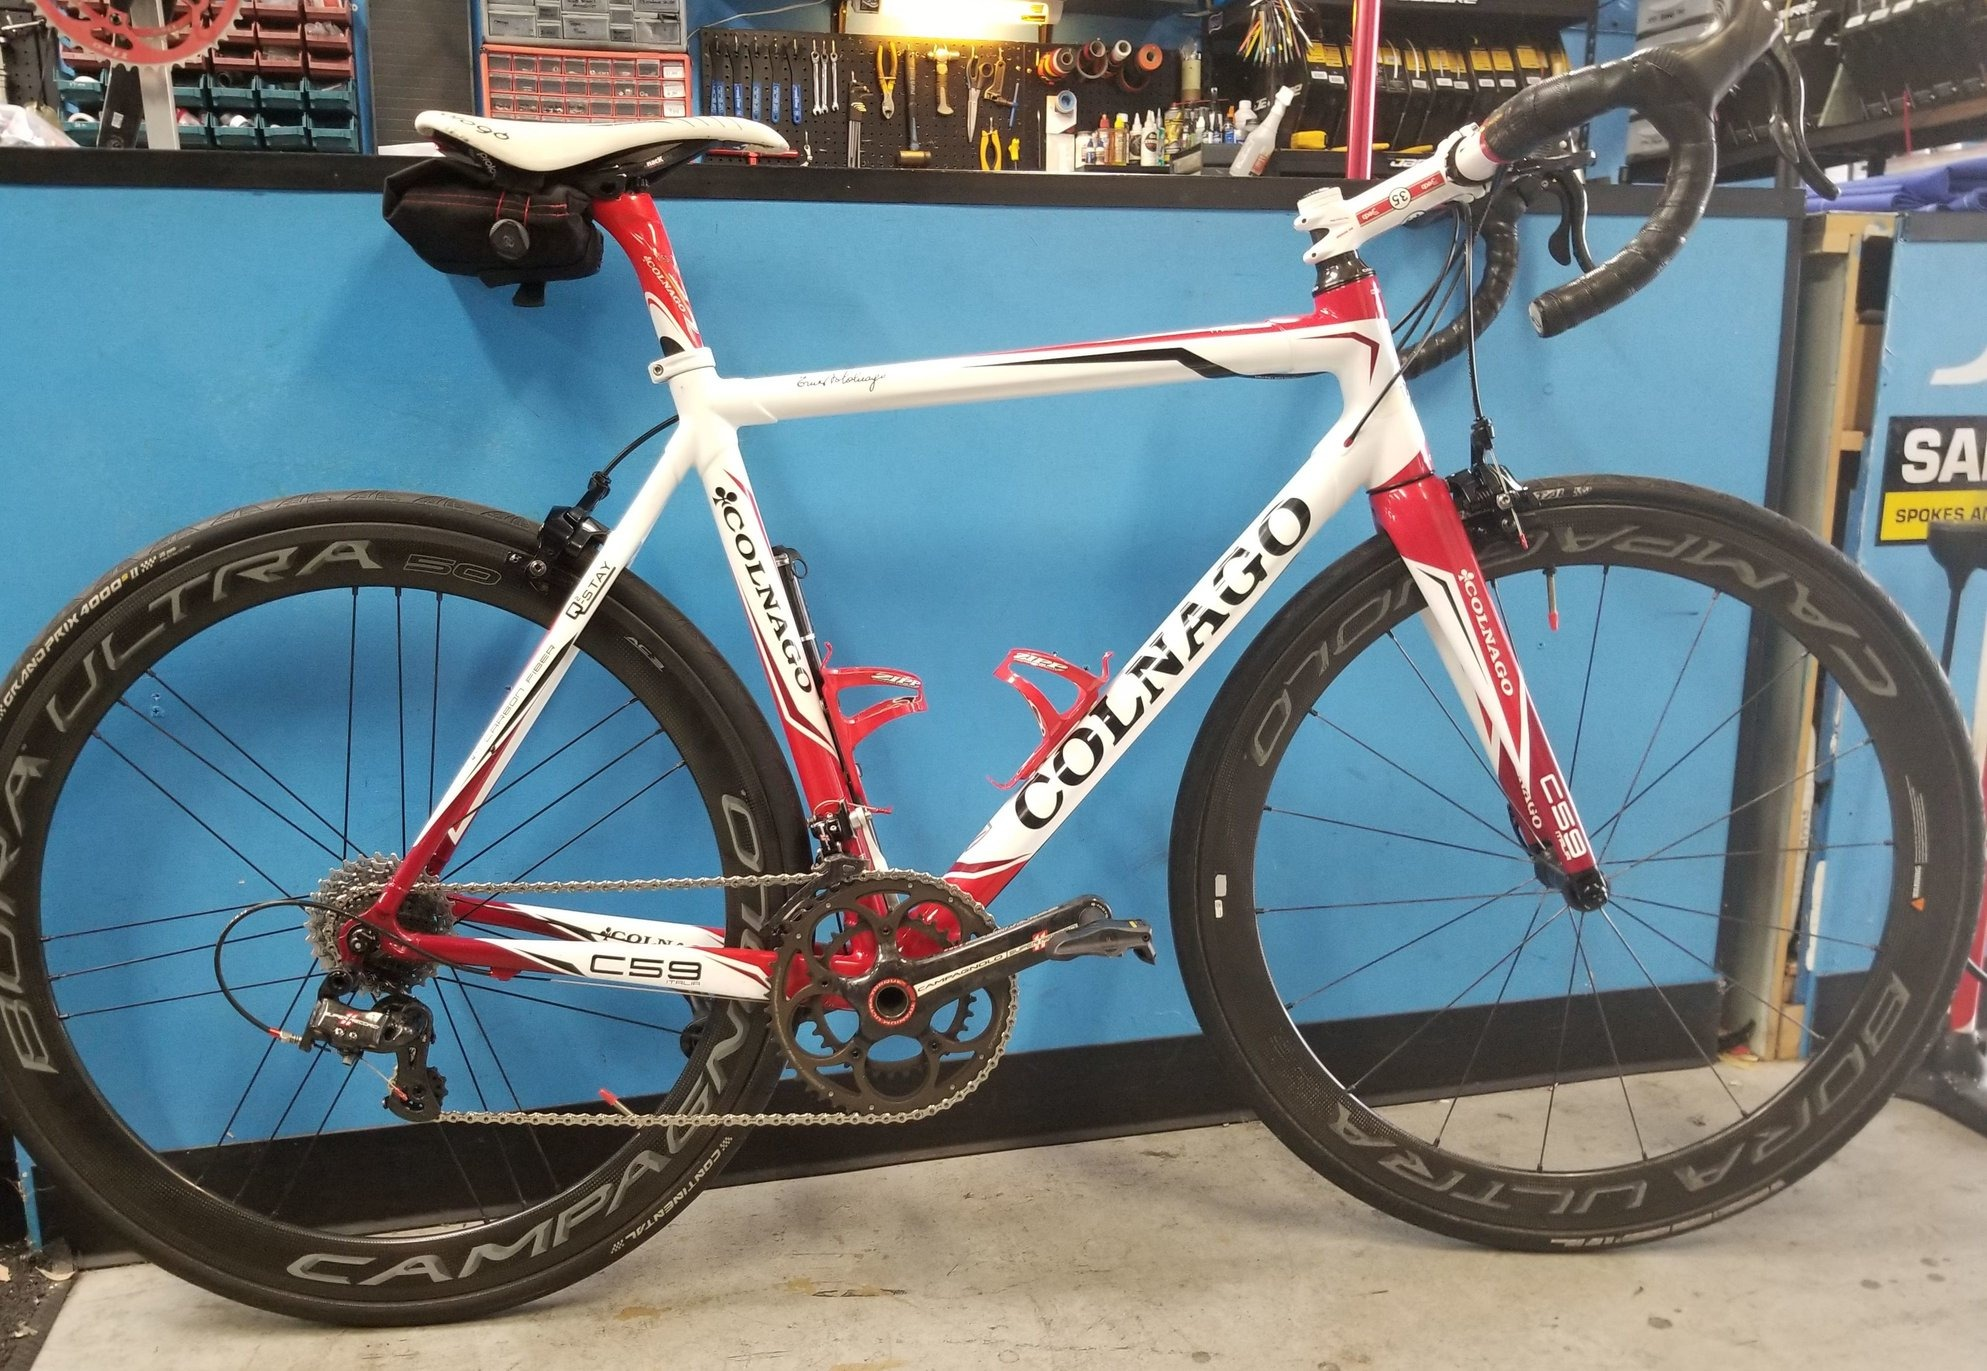 White Colnago Road Bike with red accents